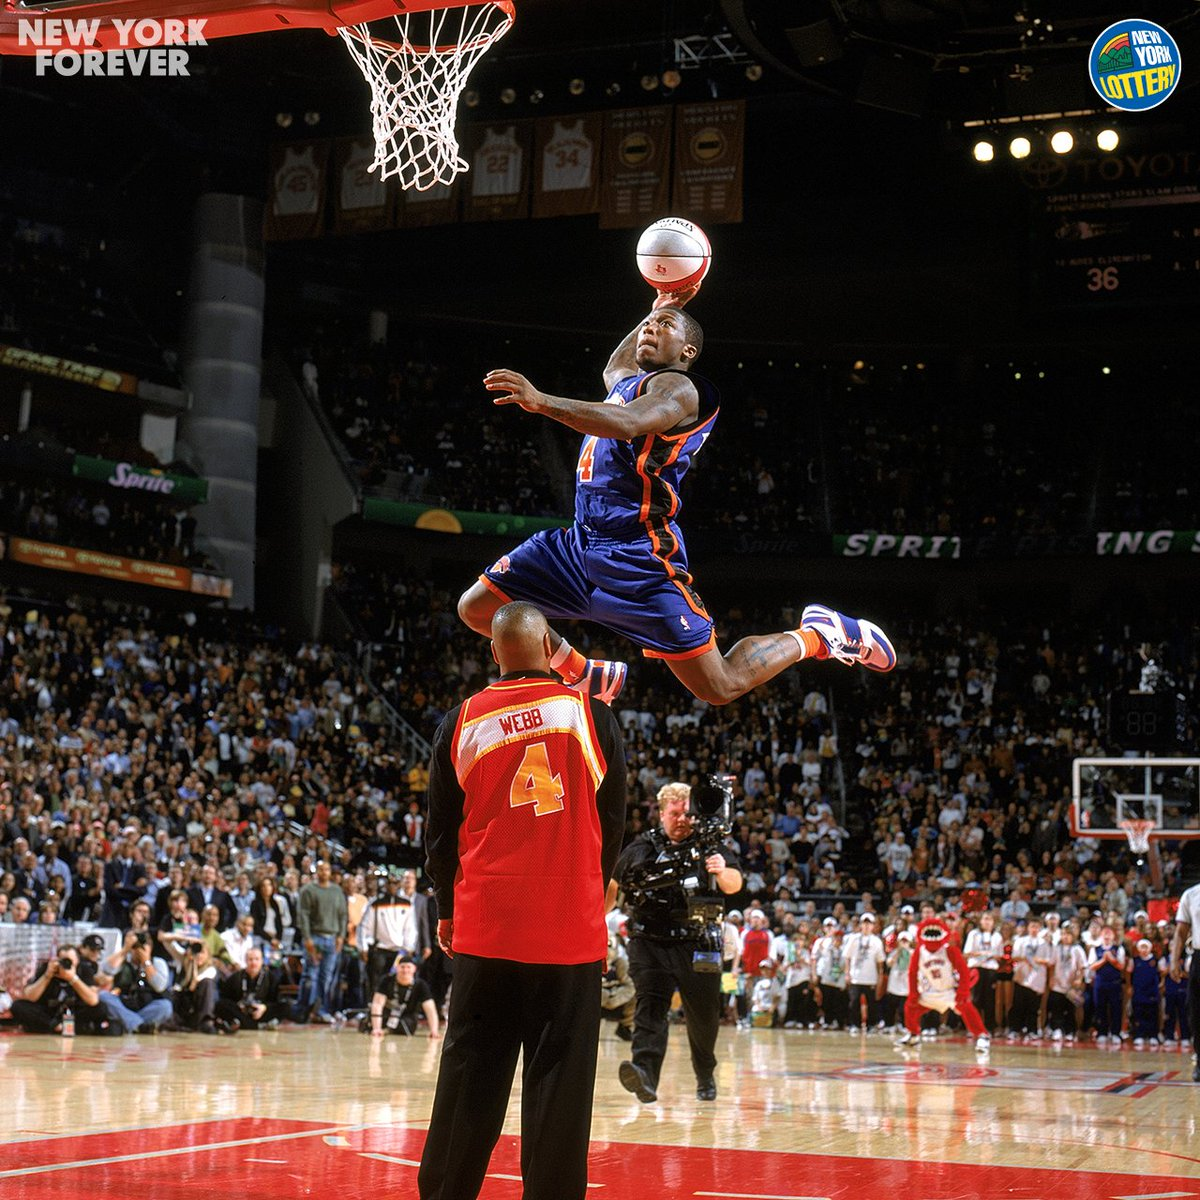 1 of 3 🏆  This Day in Knicks History: @nate_robinson got the crowd on its feet after jumping over Spud Webb, winning his 1st Slam Dunk title in 2006.